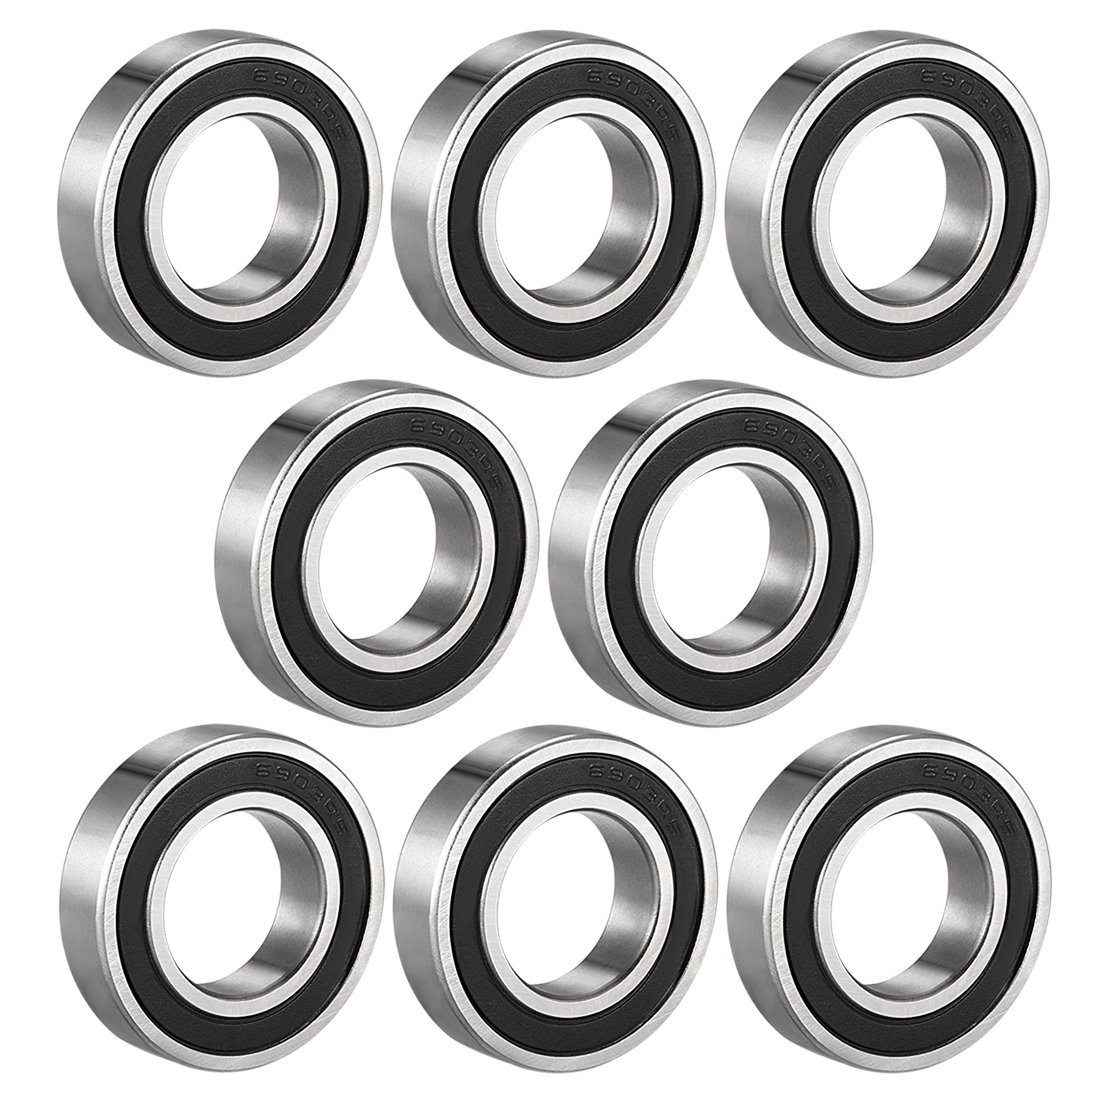 sourcing map 6903-2RS Deep Groove Ball Bearing Double Sealed 1180903, 17mm x 30mm x 7mm Carbon Steel Bearings (Pack of 8)